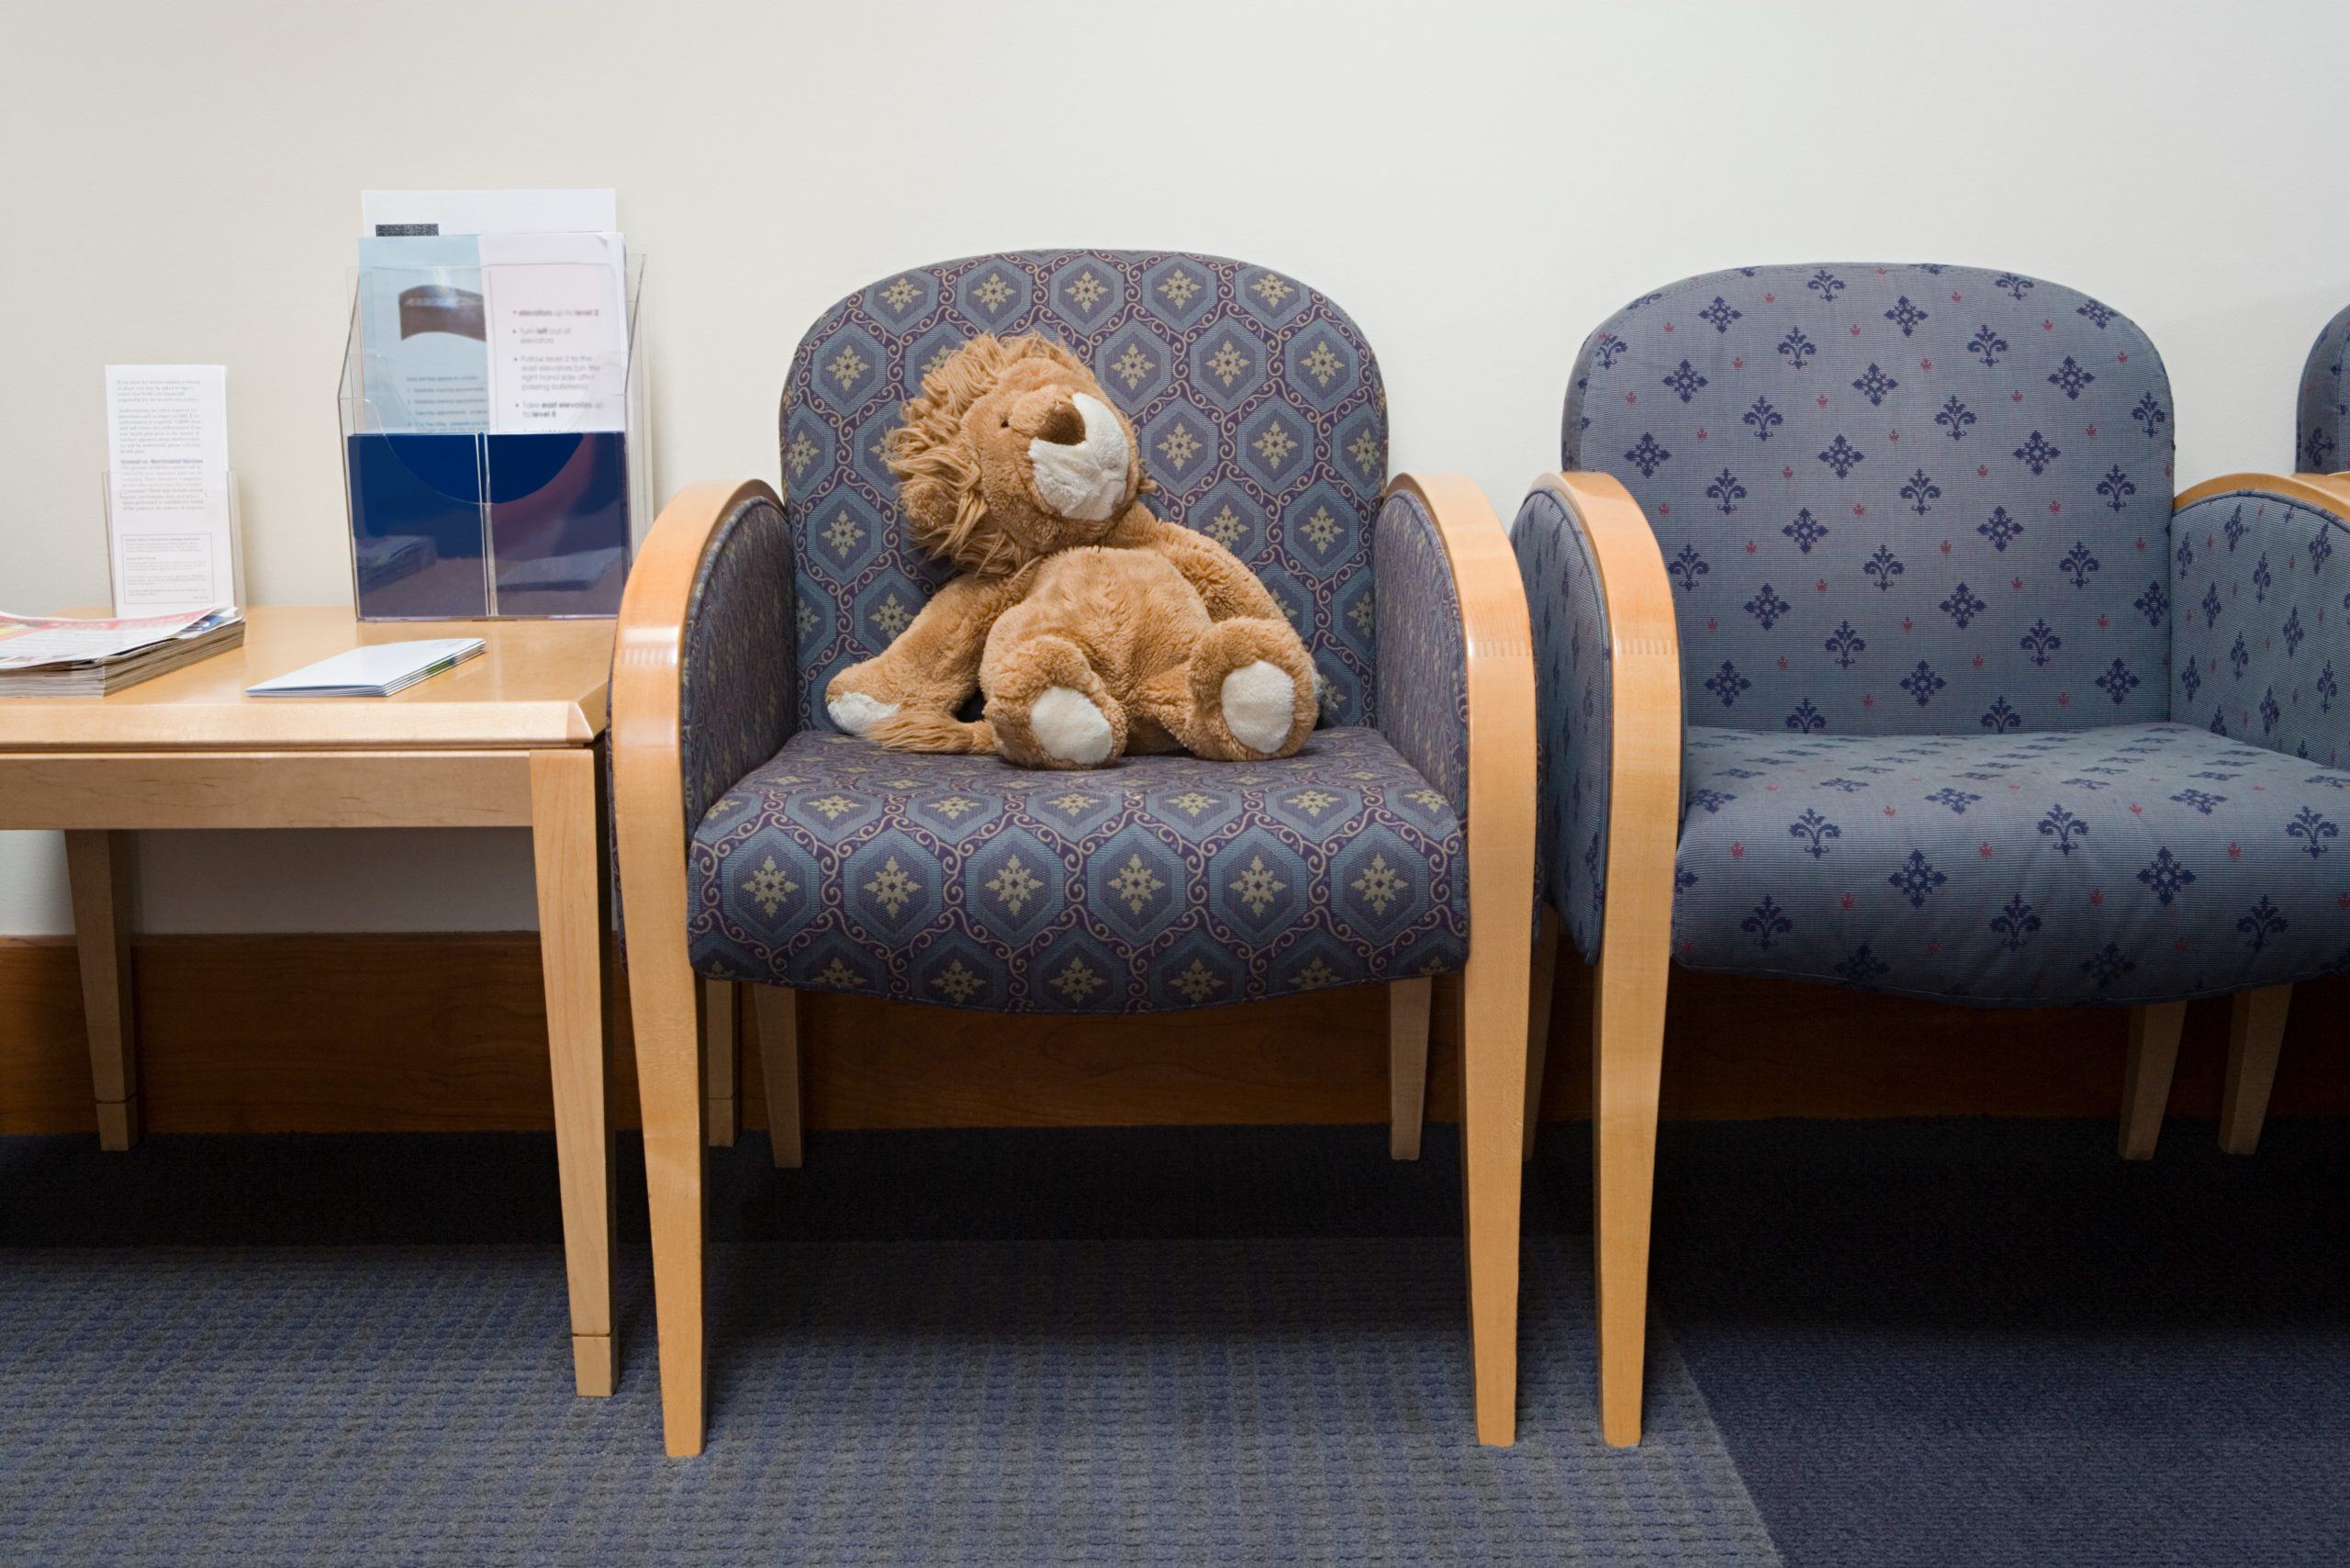 A toy lion forgotten on one of several empty chairs in a clinic waiting room